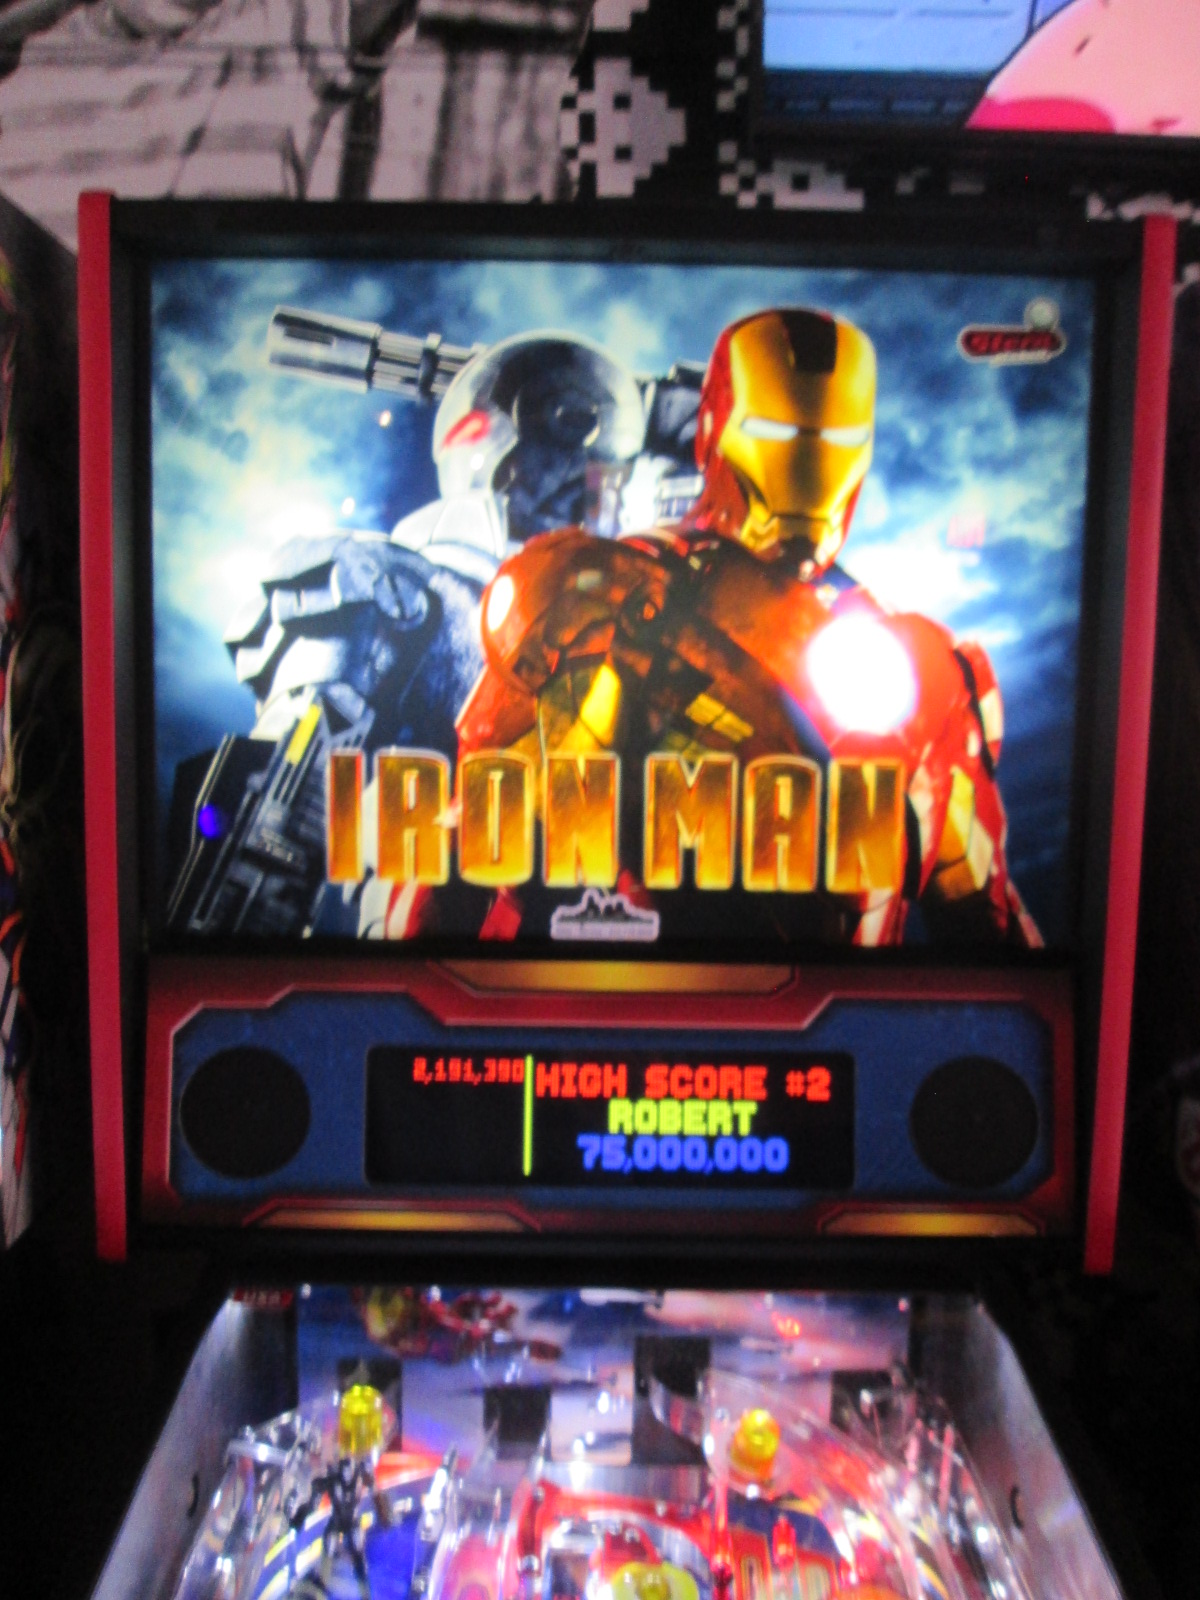 ed1475: Iron Man (Pinball: 3 Balls) 2,191,390 points on 2016-08-28 17:38:21